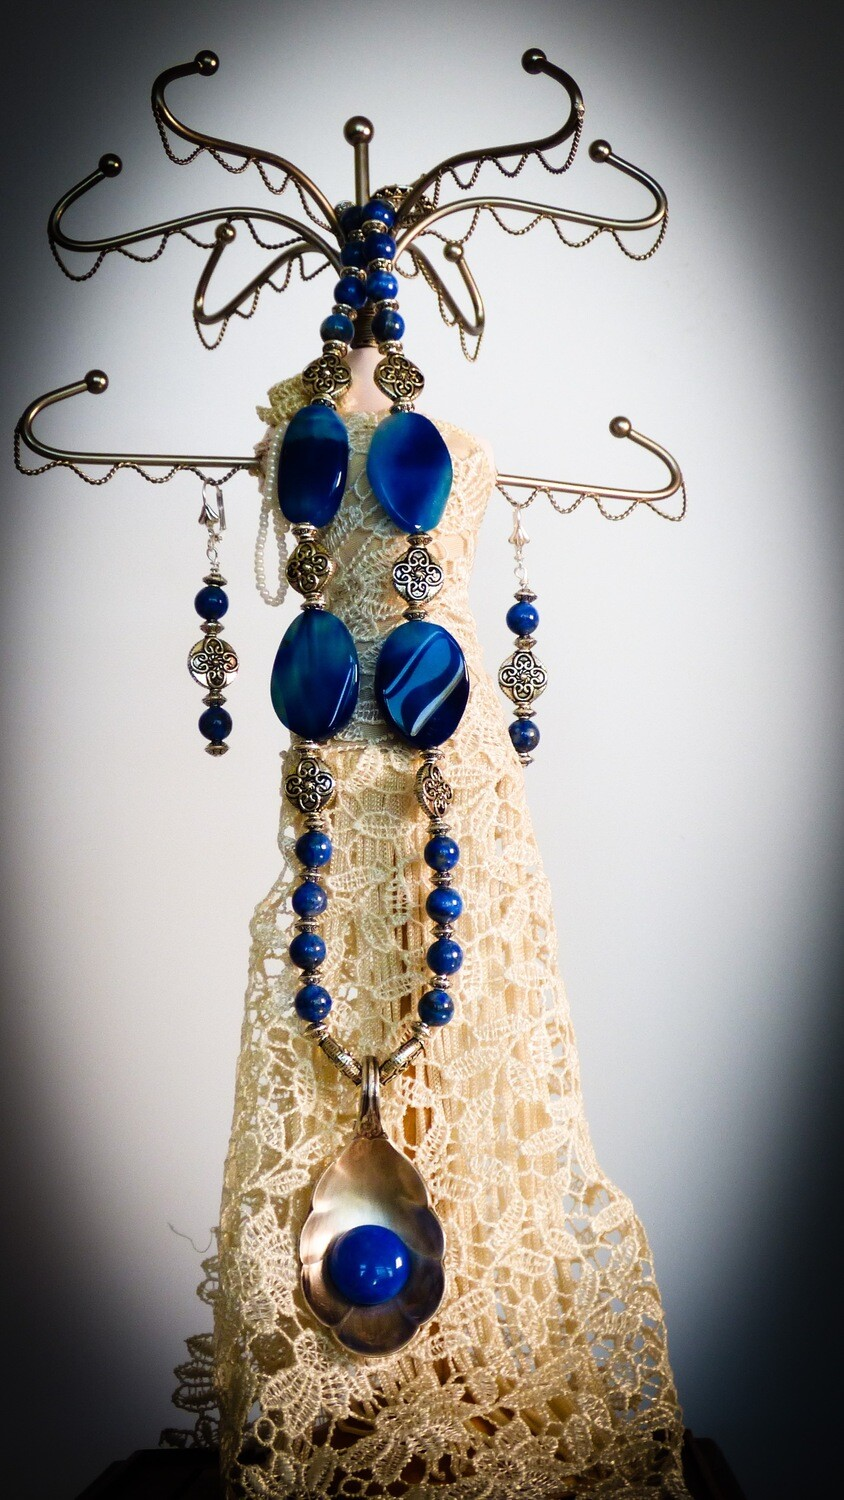 Blue Pearls & Blue Pendant Spoon From 1800's